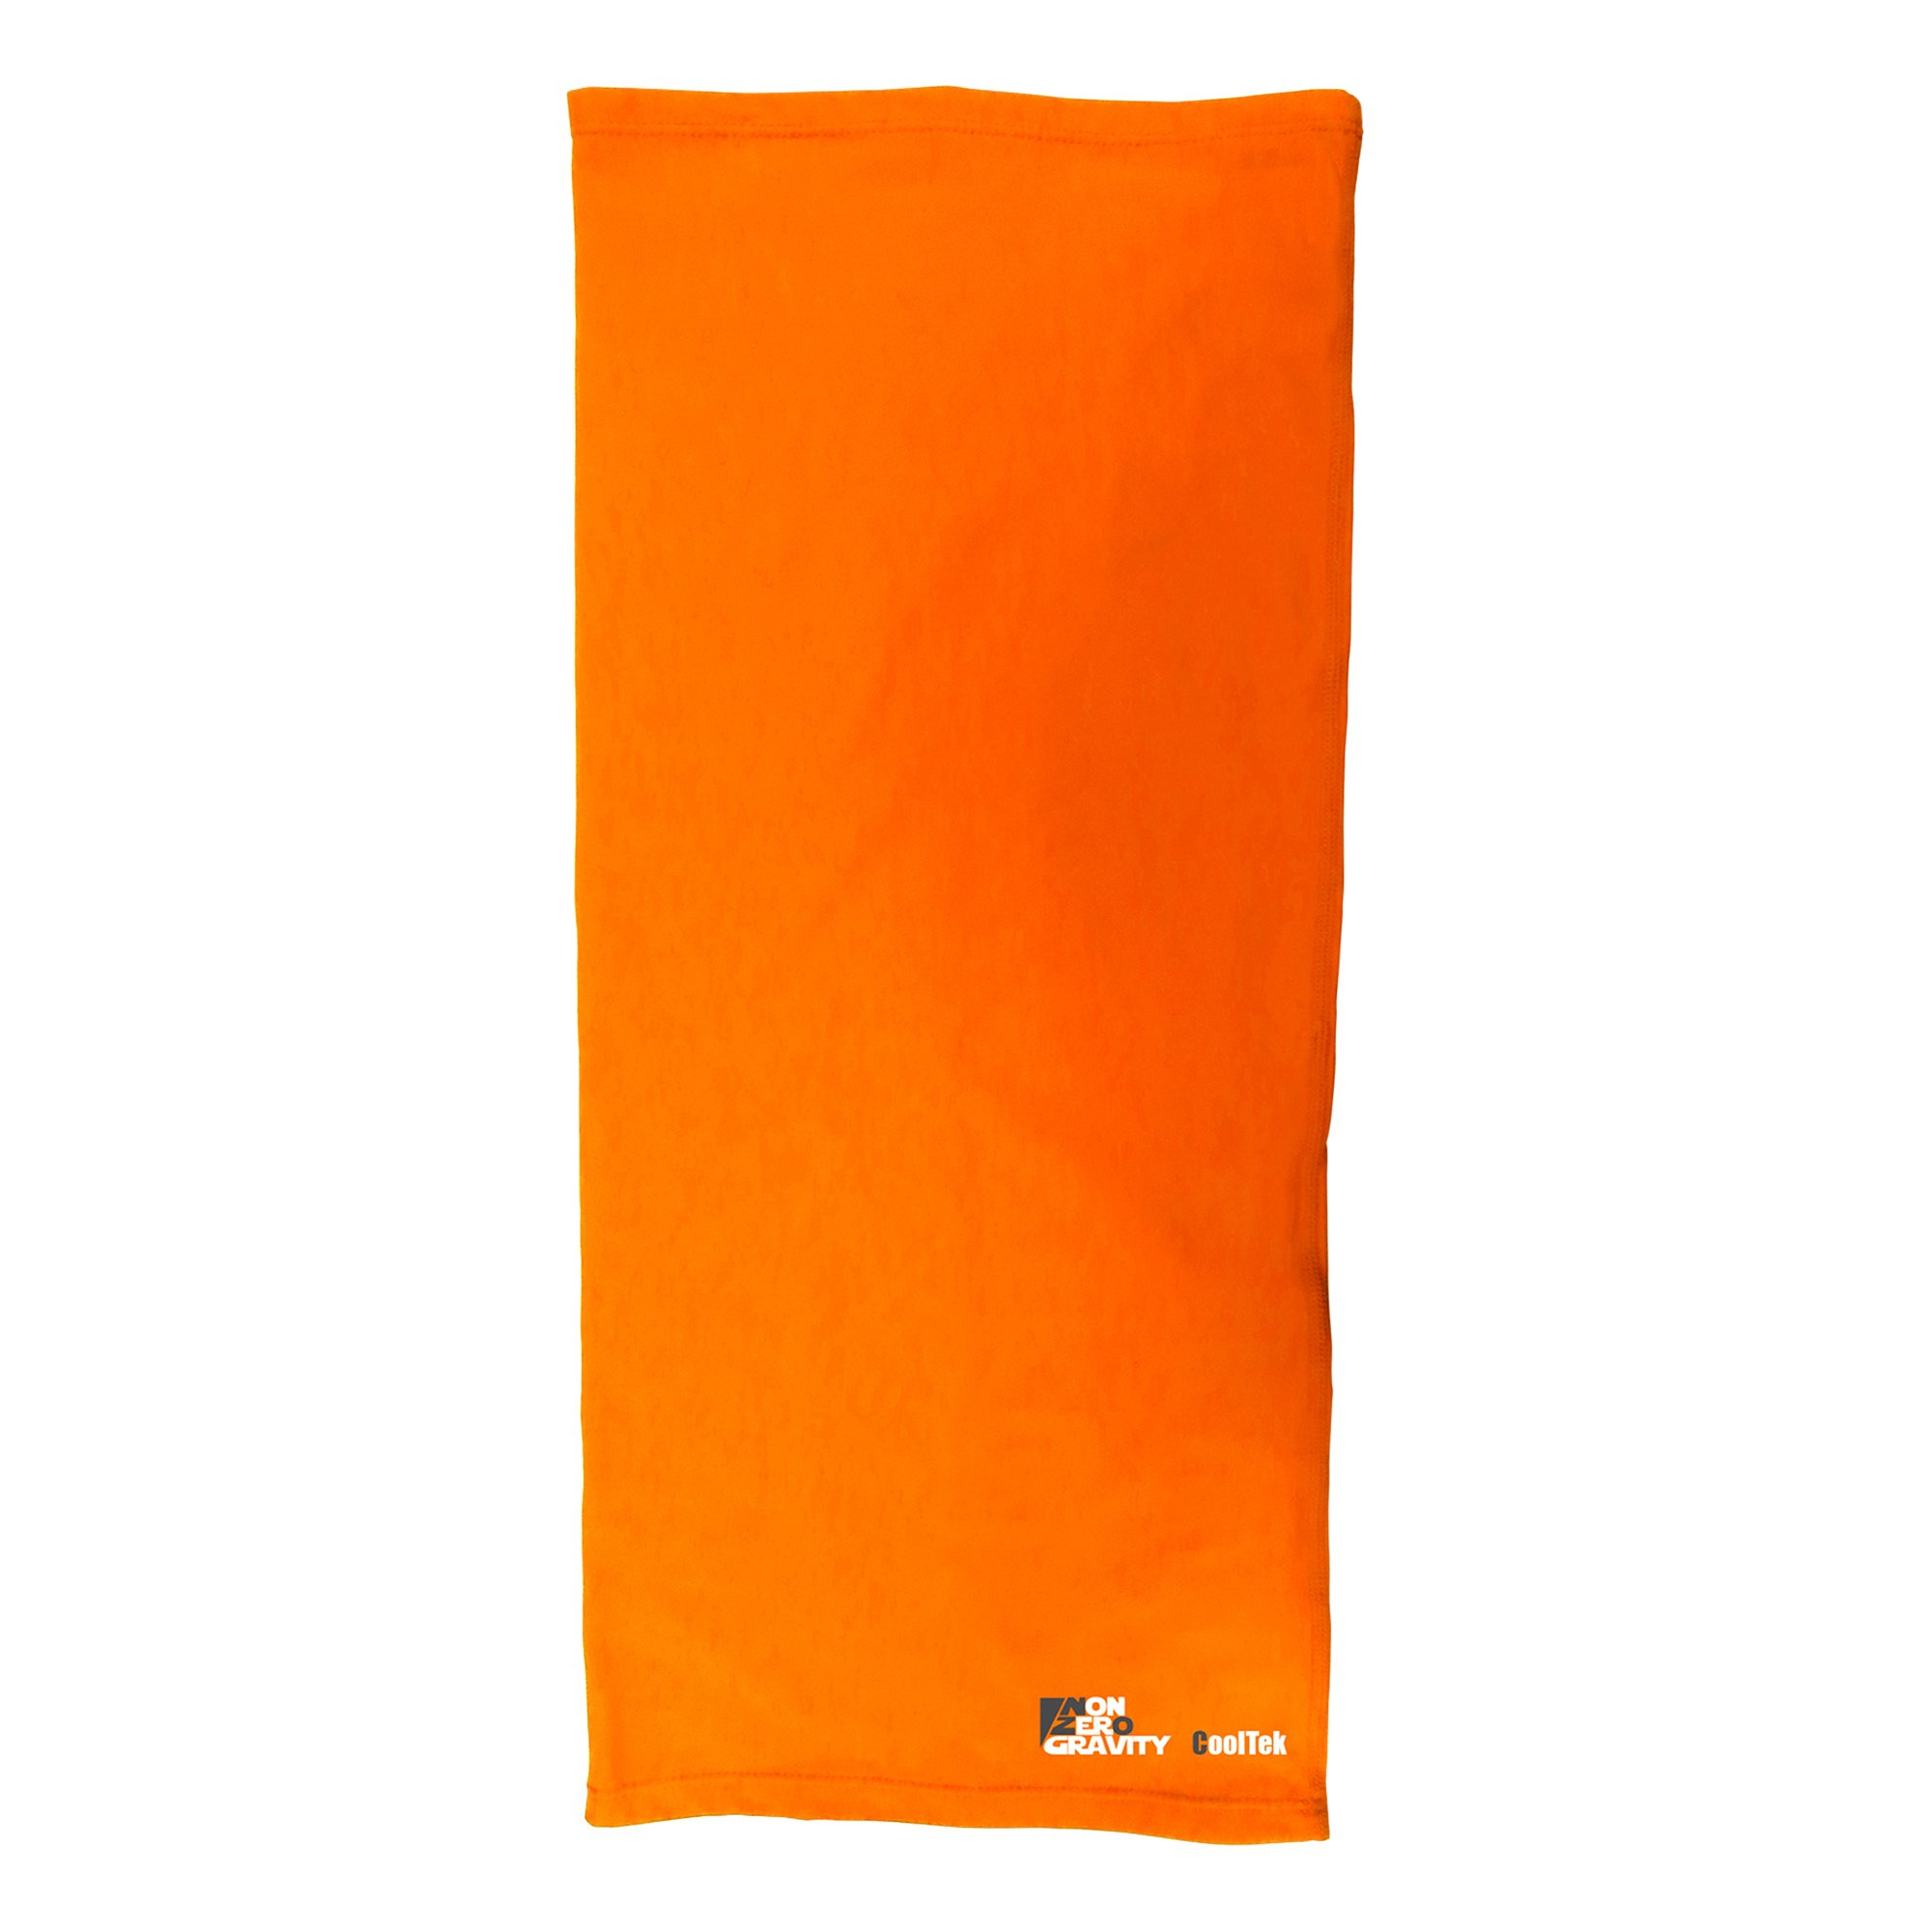 NonZero Gravity Cooling Hood | Tactical Hoodie, Head Wrap And Neck Scarf For Cycling, Biking And Sports (12-in-1, Orange)